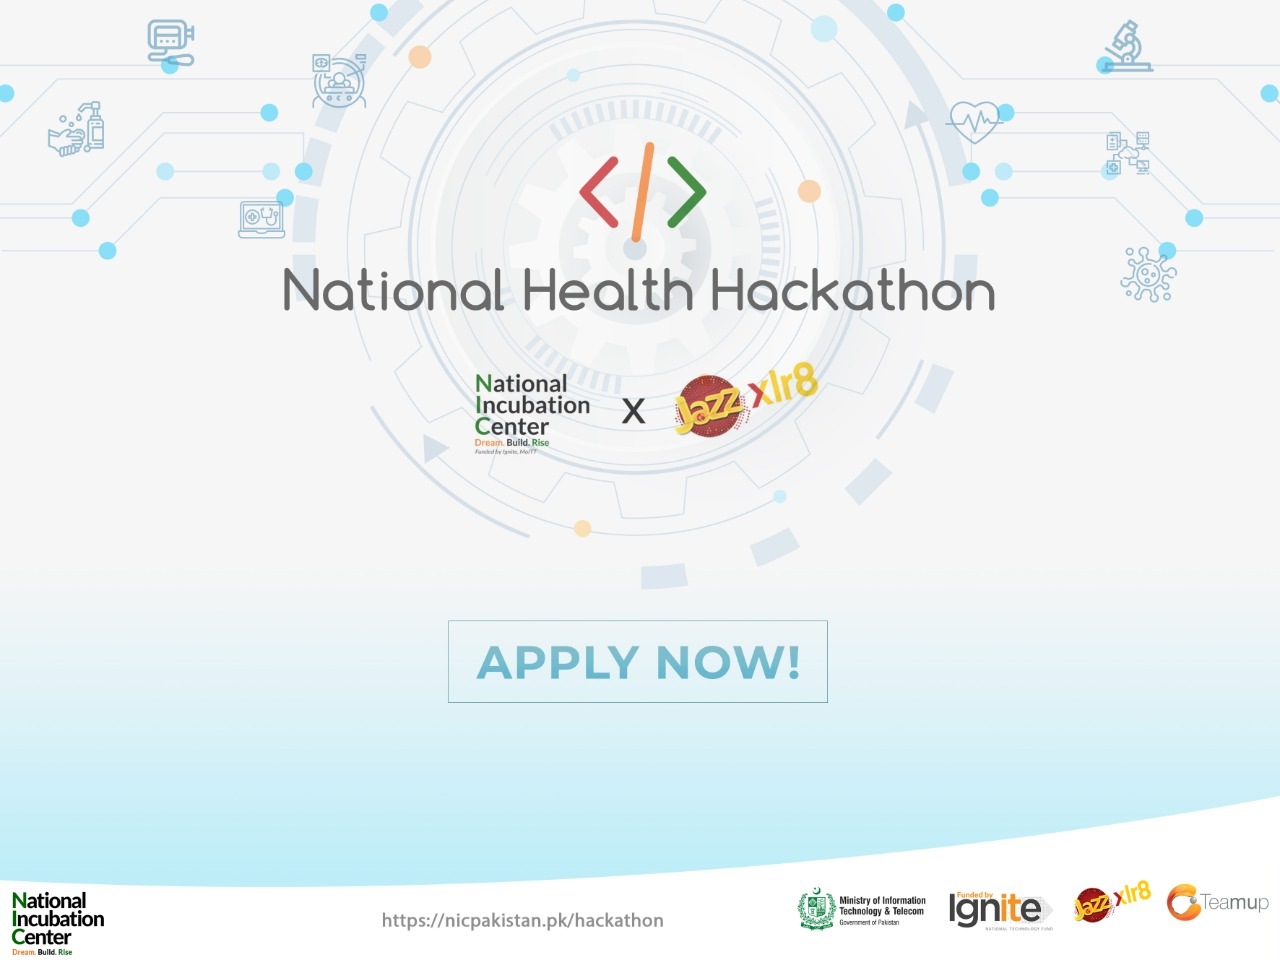 Jazz xlr8 & NIC launch a National Health Hackathon focusing on COVID-19 & communicable diseases